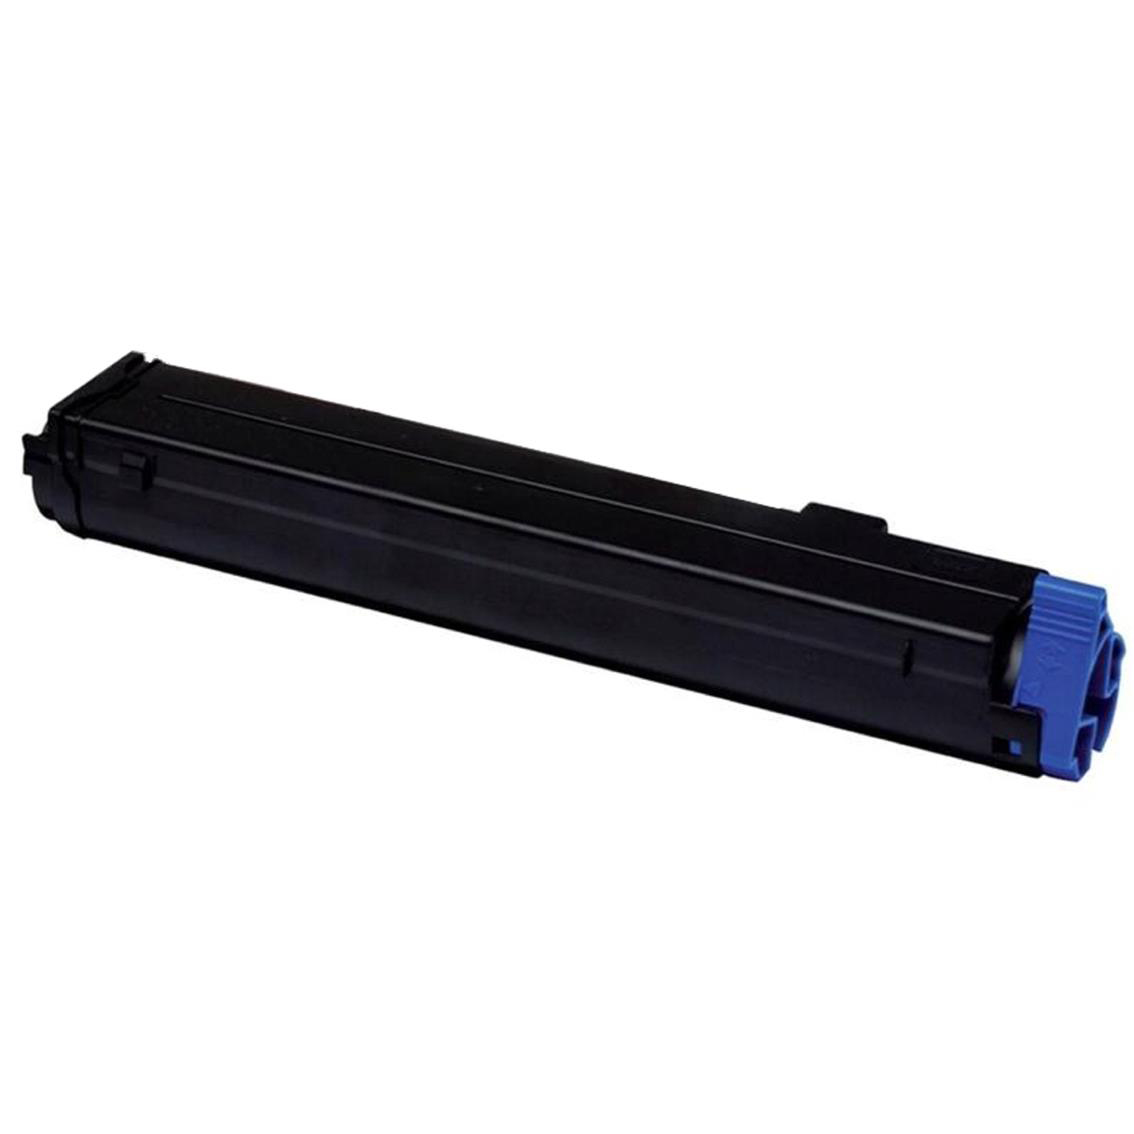 OKI Laser Toner Cartridge High Yield Page Life 7000pp Black Ref 45807106